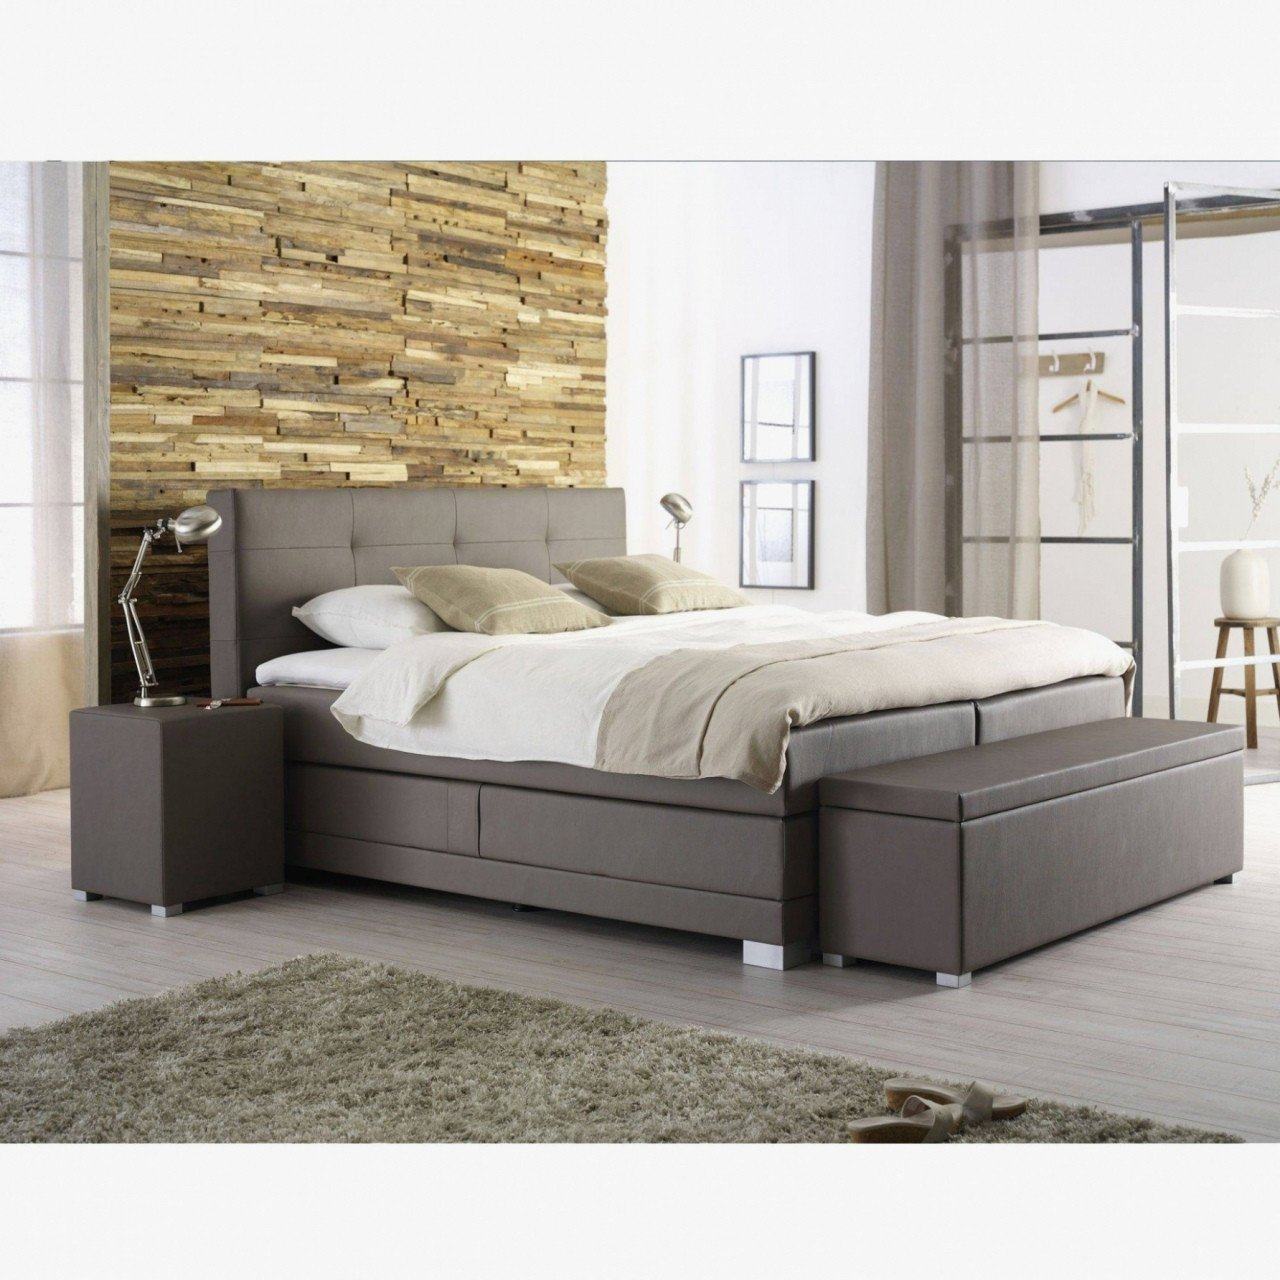 Black Leather Bedroom Set Fresh Bed with Drawers Under — Procura Home Blog